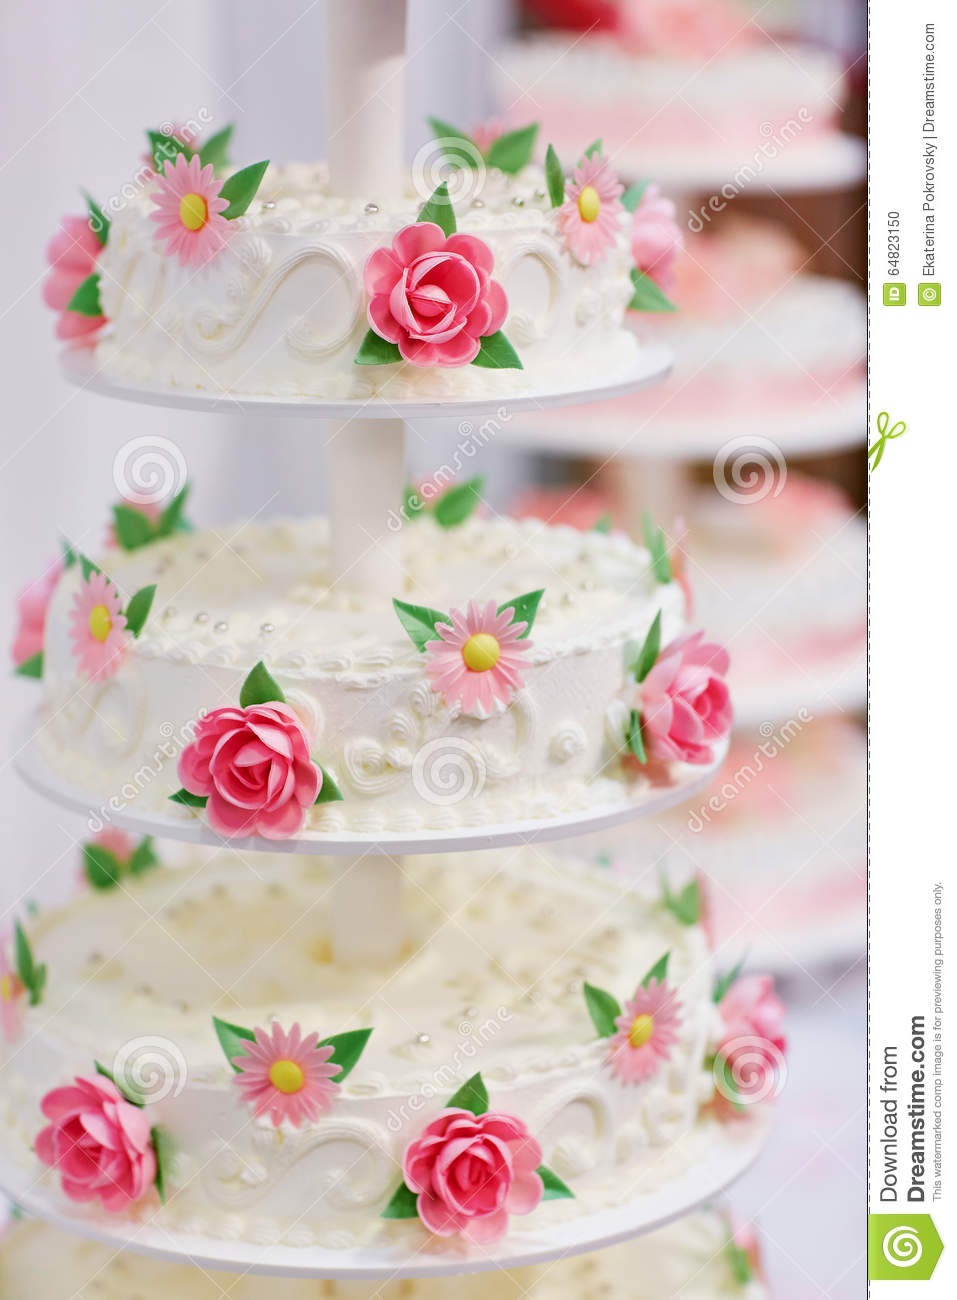 White Wedding Cake Decorated With Flowers Stock Photo - Image of ...